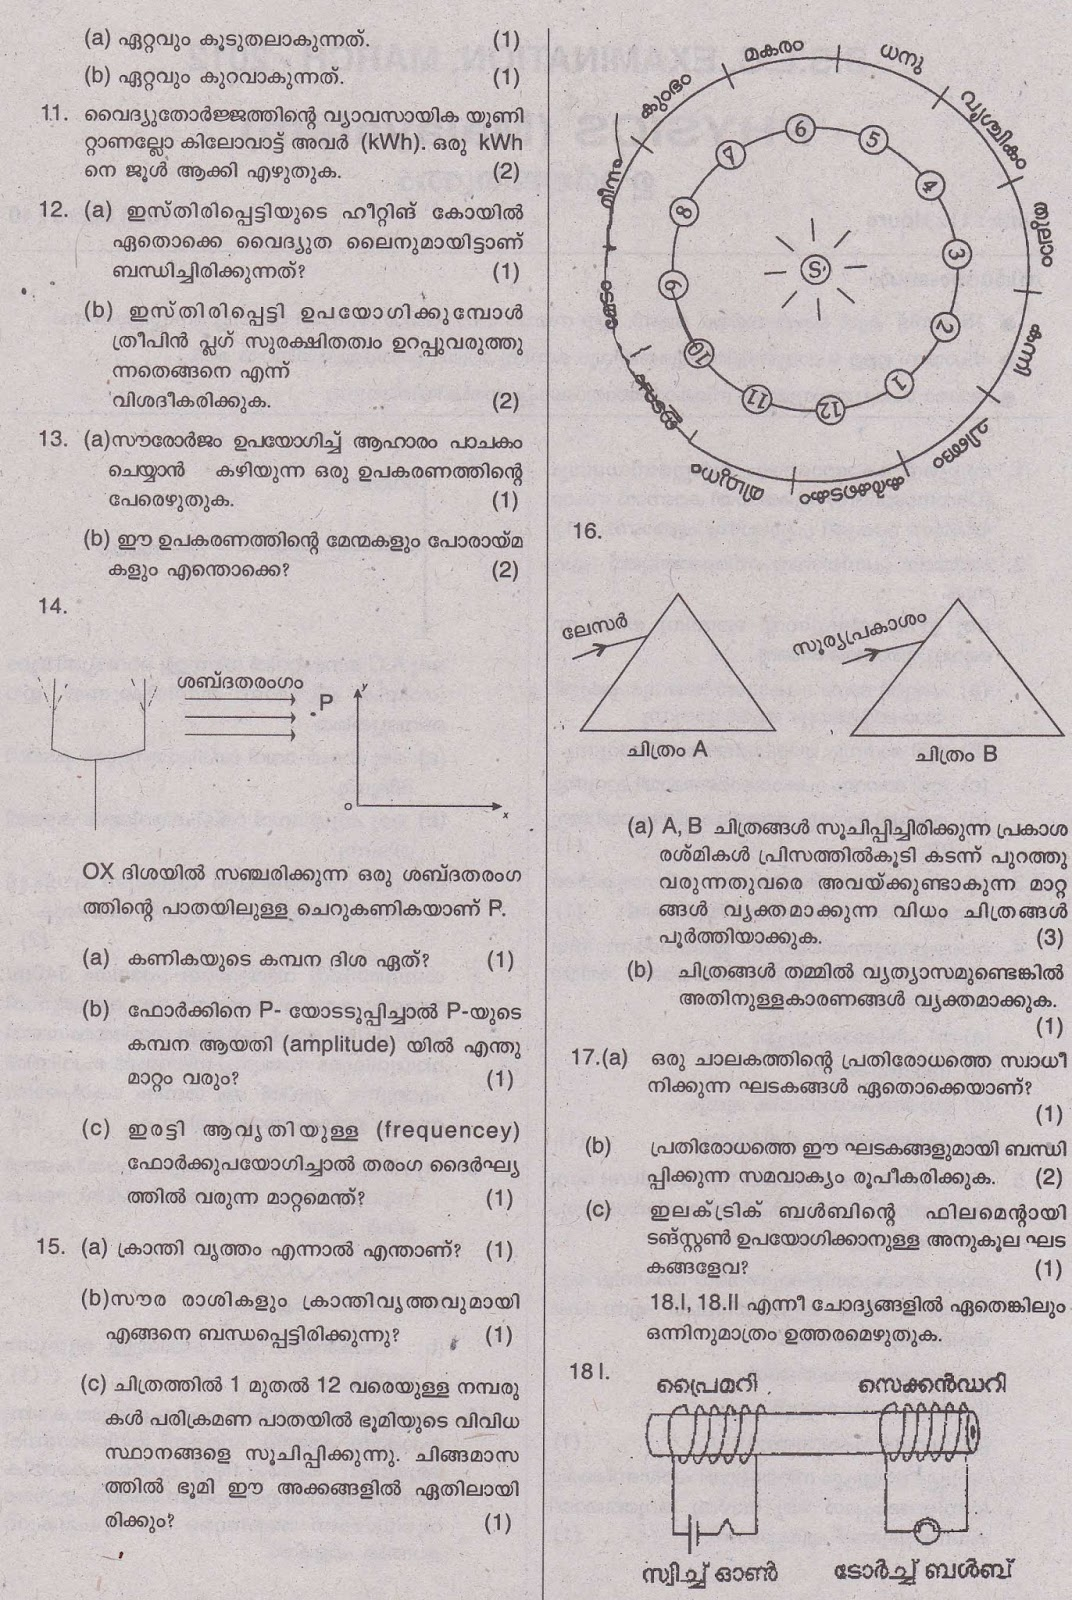 Sslc question paper 082115 kerala sslc model question papers physics sslc physics model question paper english medium kerala physics model question paper for sslc 2016 malvernweather Image collections